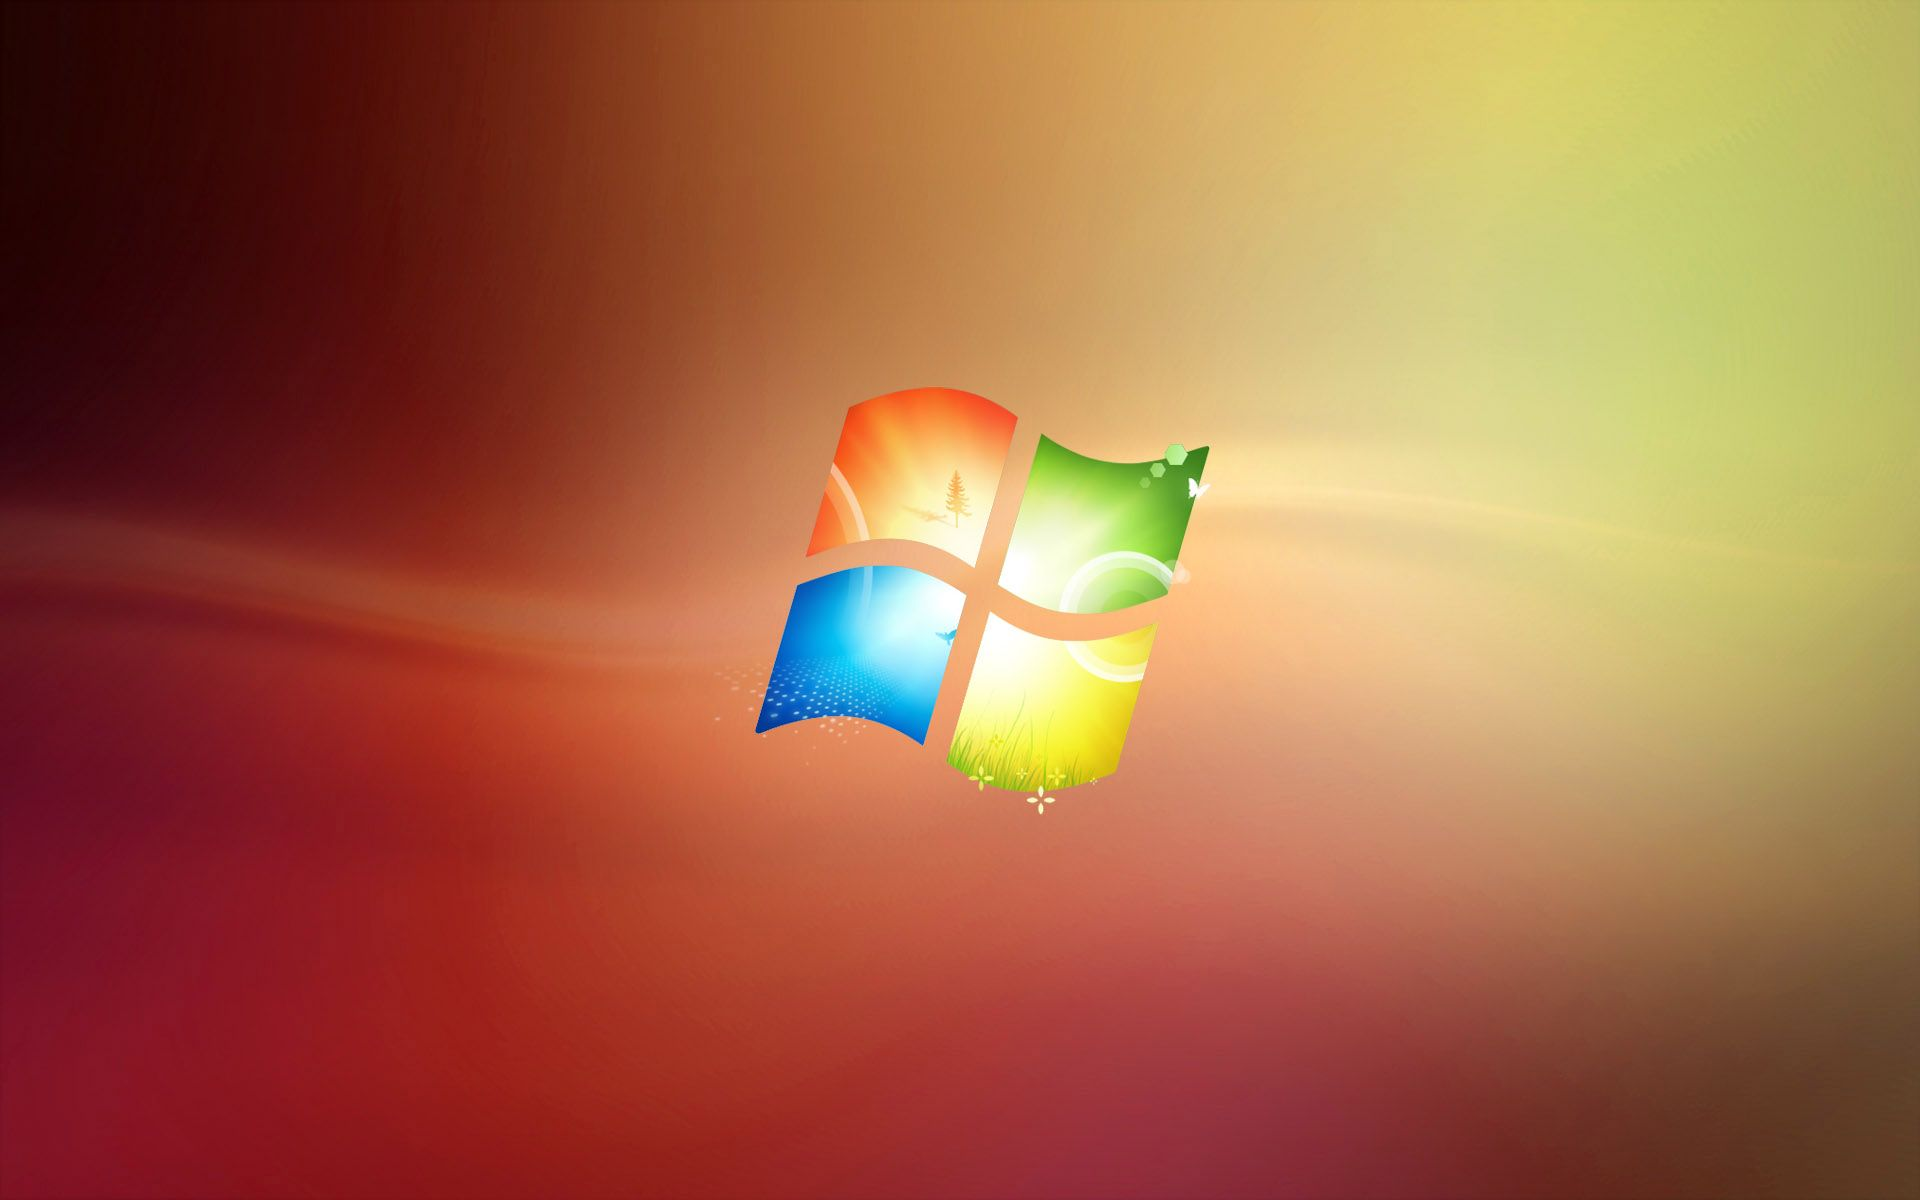 windows hd wallpapers download high definition | hd wallpapers